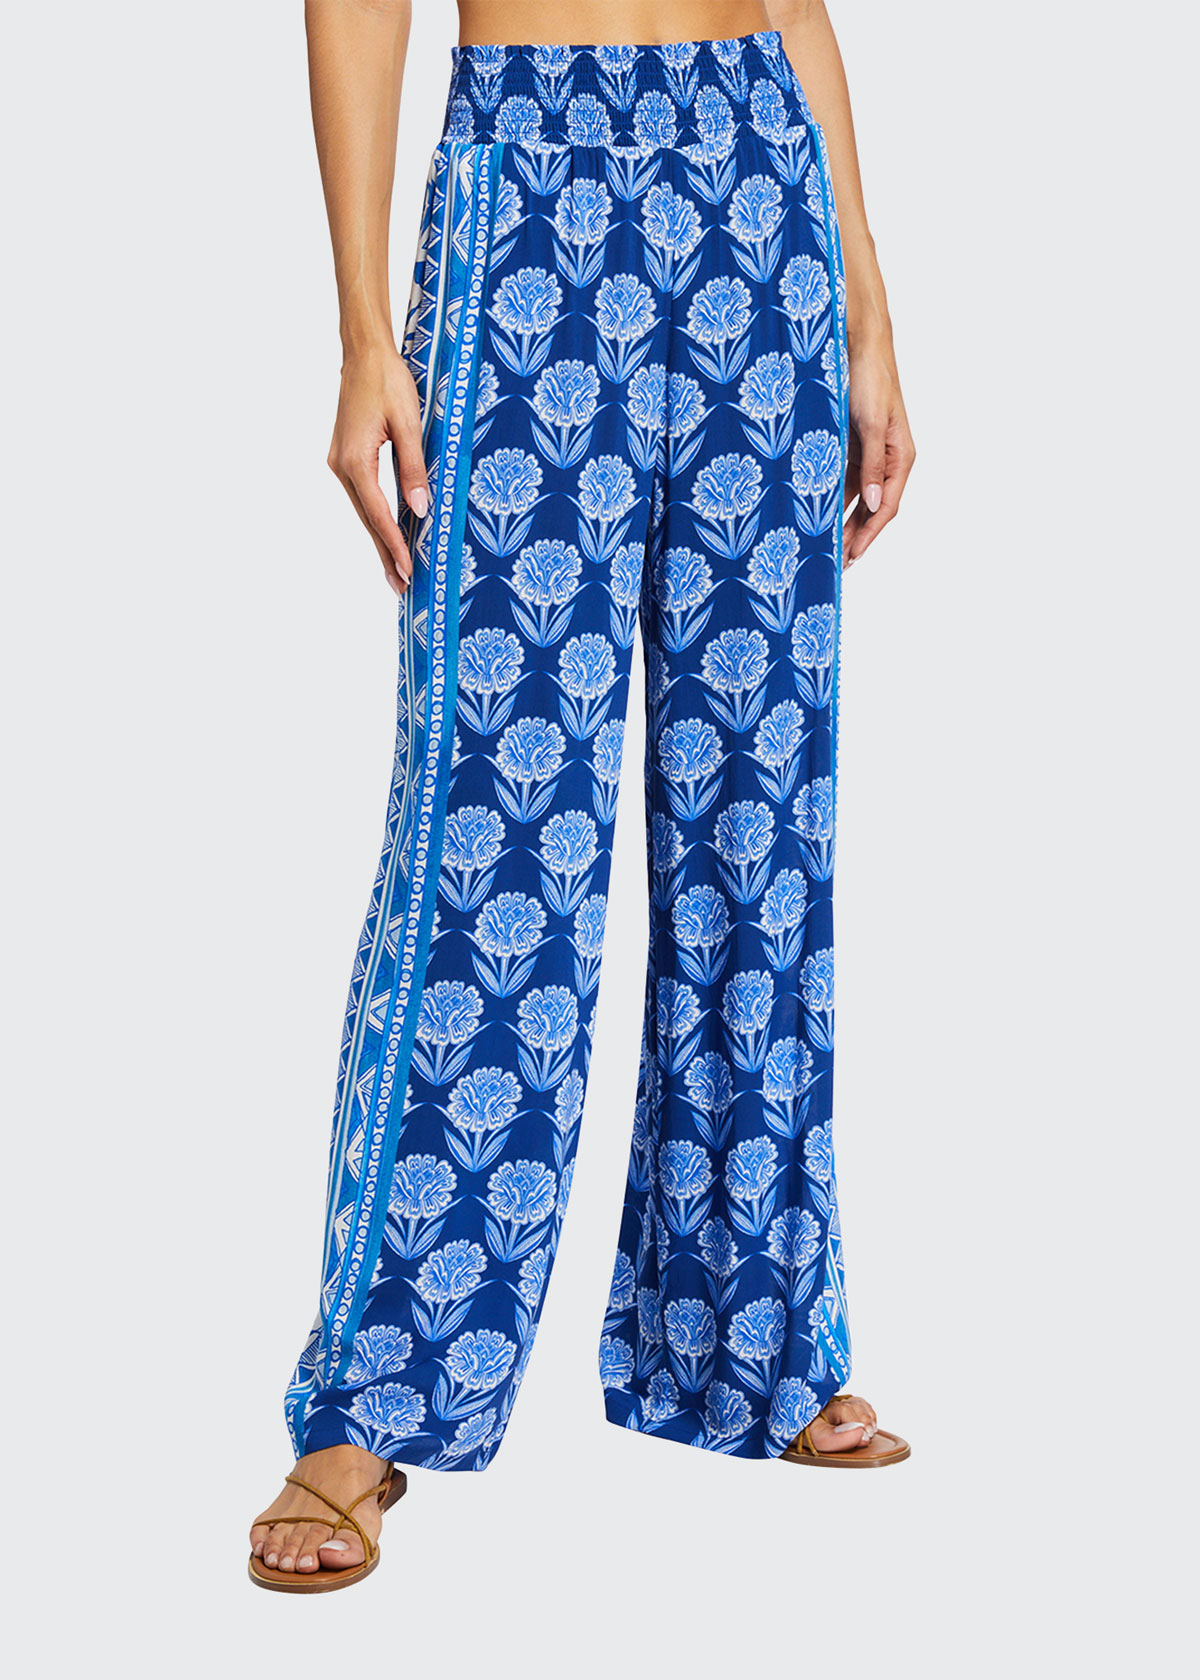 Johnny Was YAO FLORAL-PRINT PULL-ON PANTS